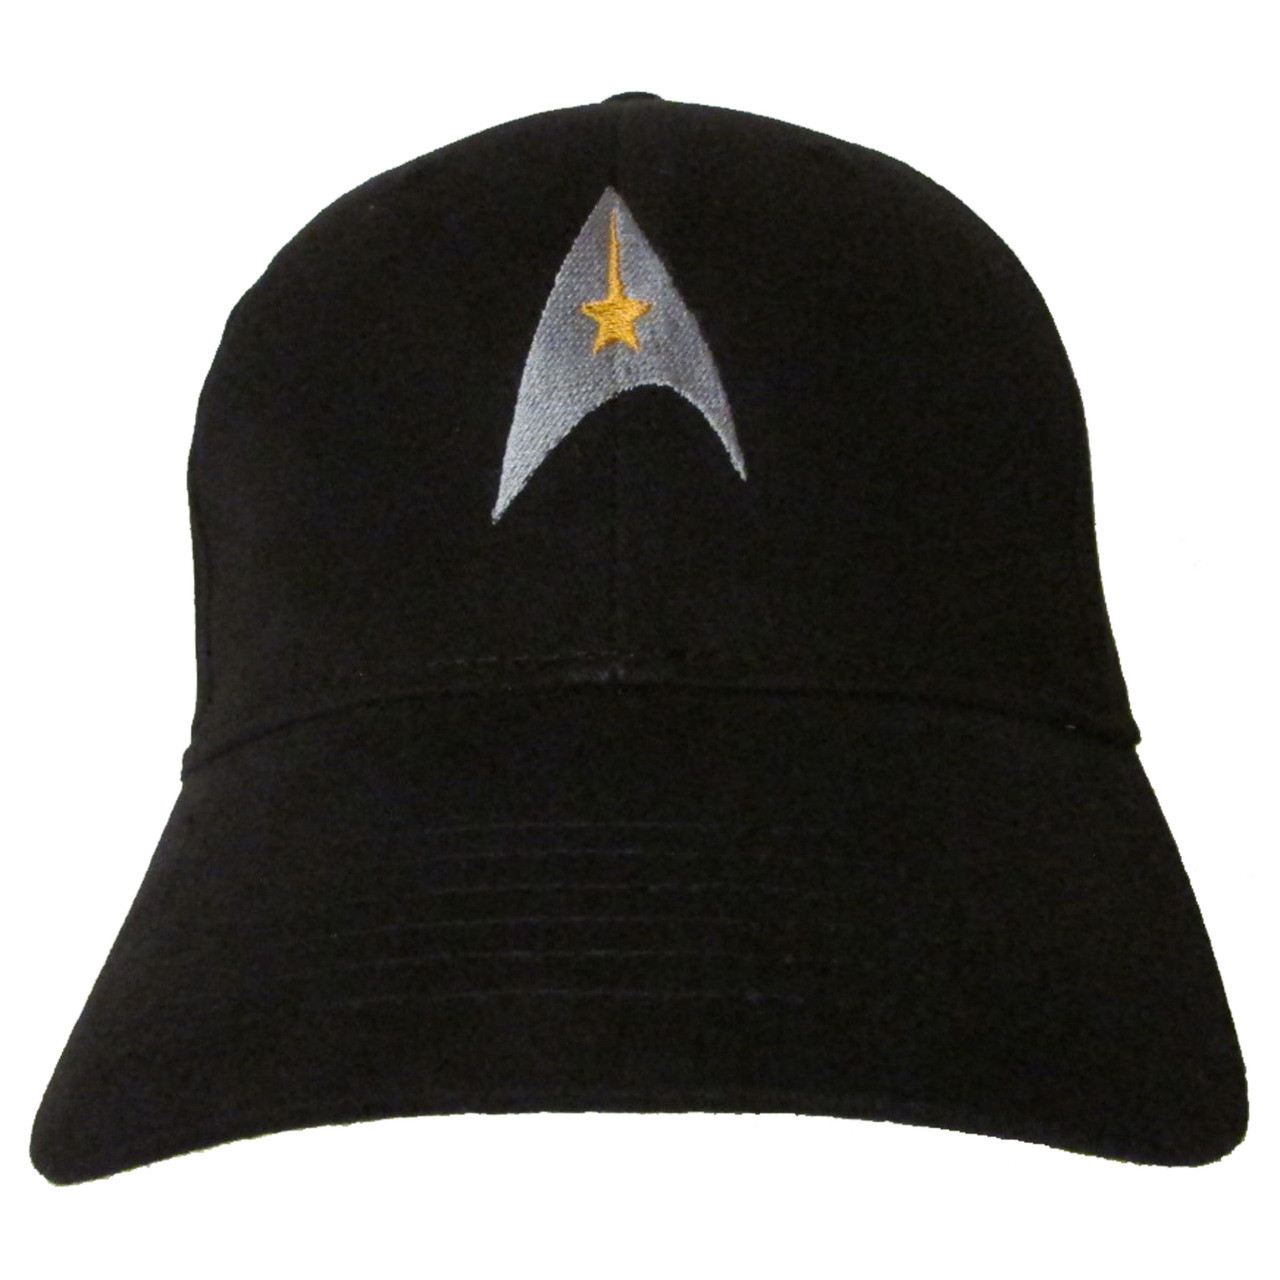 8e1841a085 Star Trek Classic Logo - Embroidered Baseball Hat - Cap - Cap Kirk Spock  McCoy